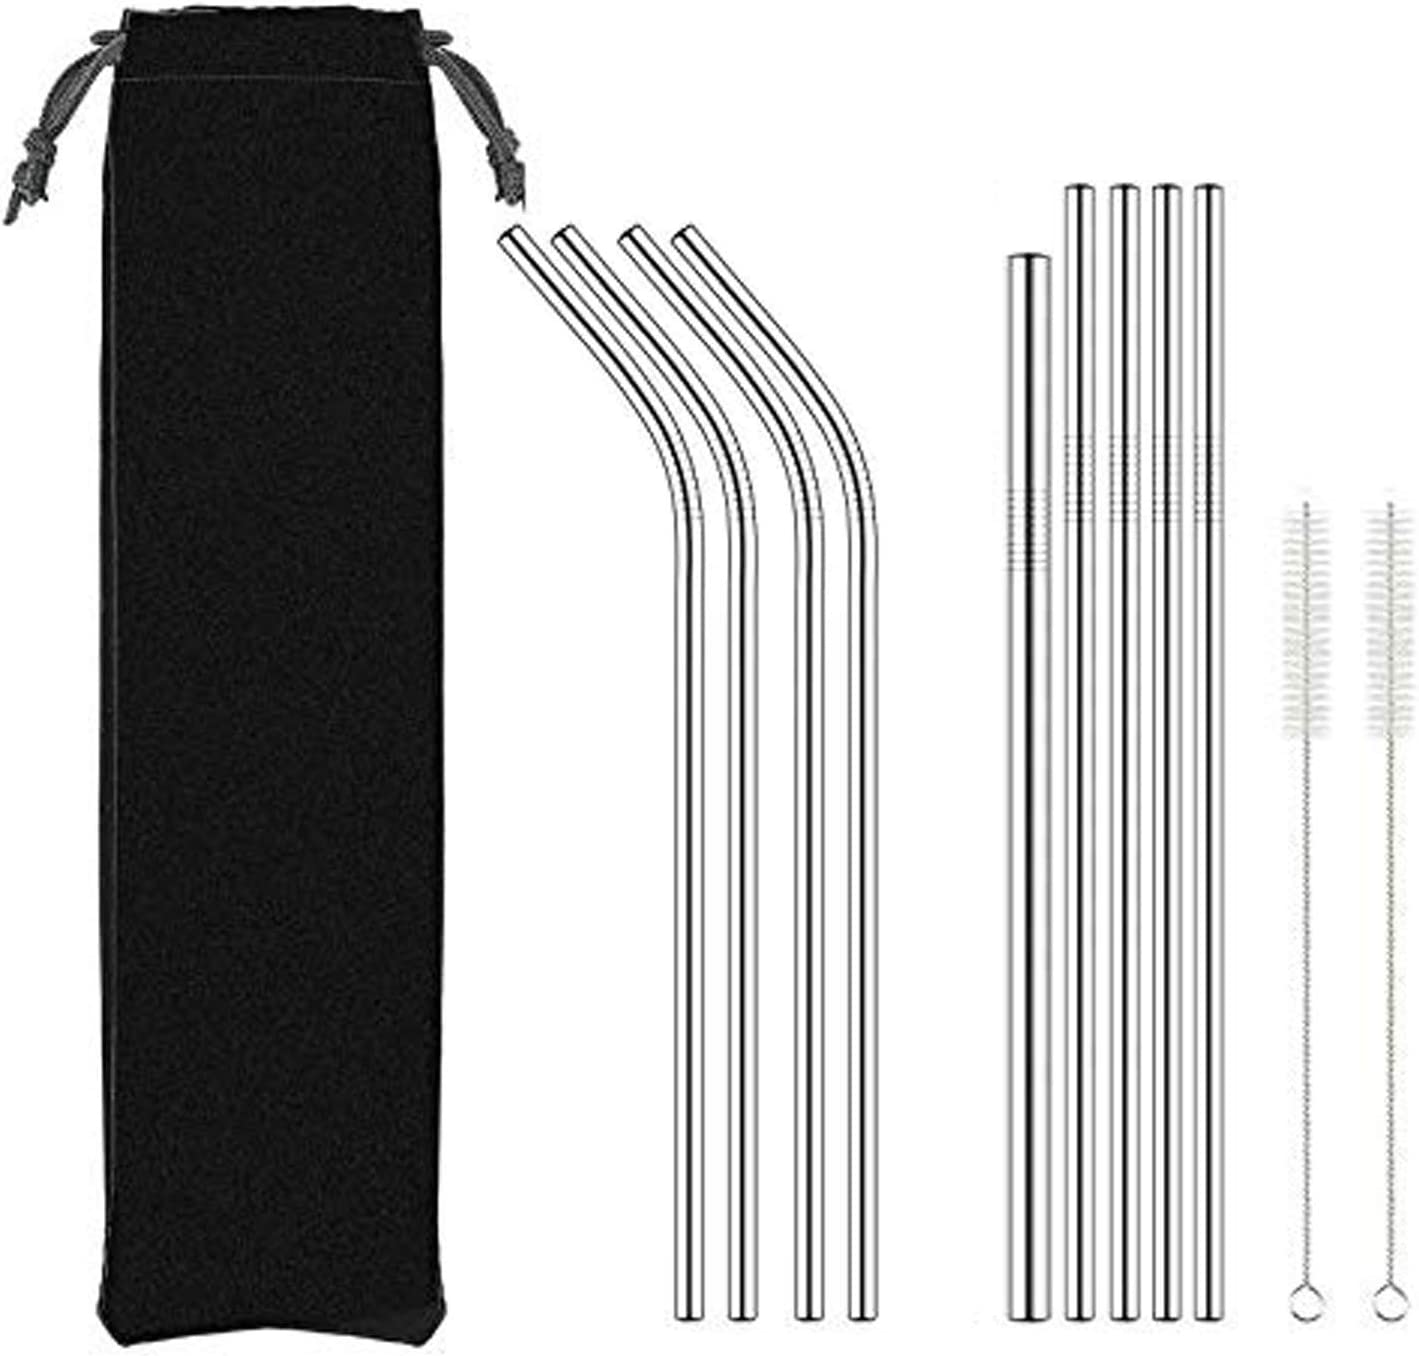 Ozark Tumbler NAHAO Set of 9 Reusable Replacement Metal Stainless Steel Straws With 2 Cleaning Bristle Brushes for 30oz Yeti RTIC